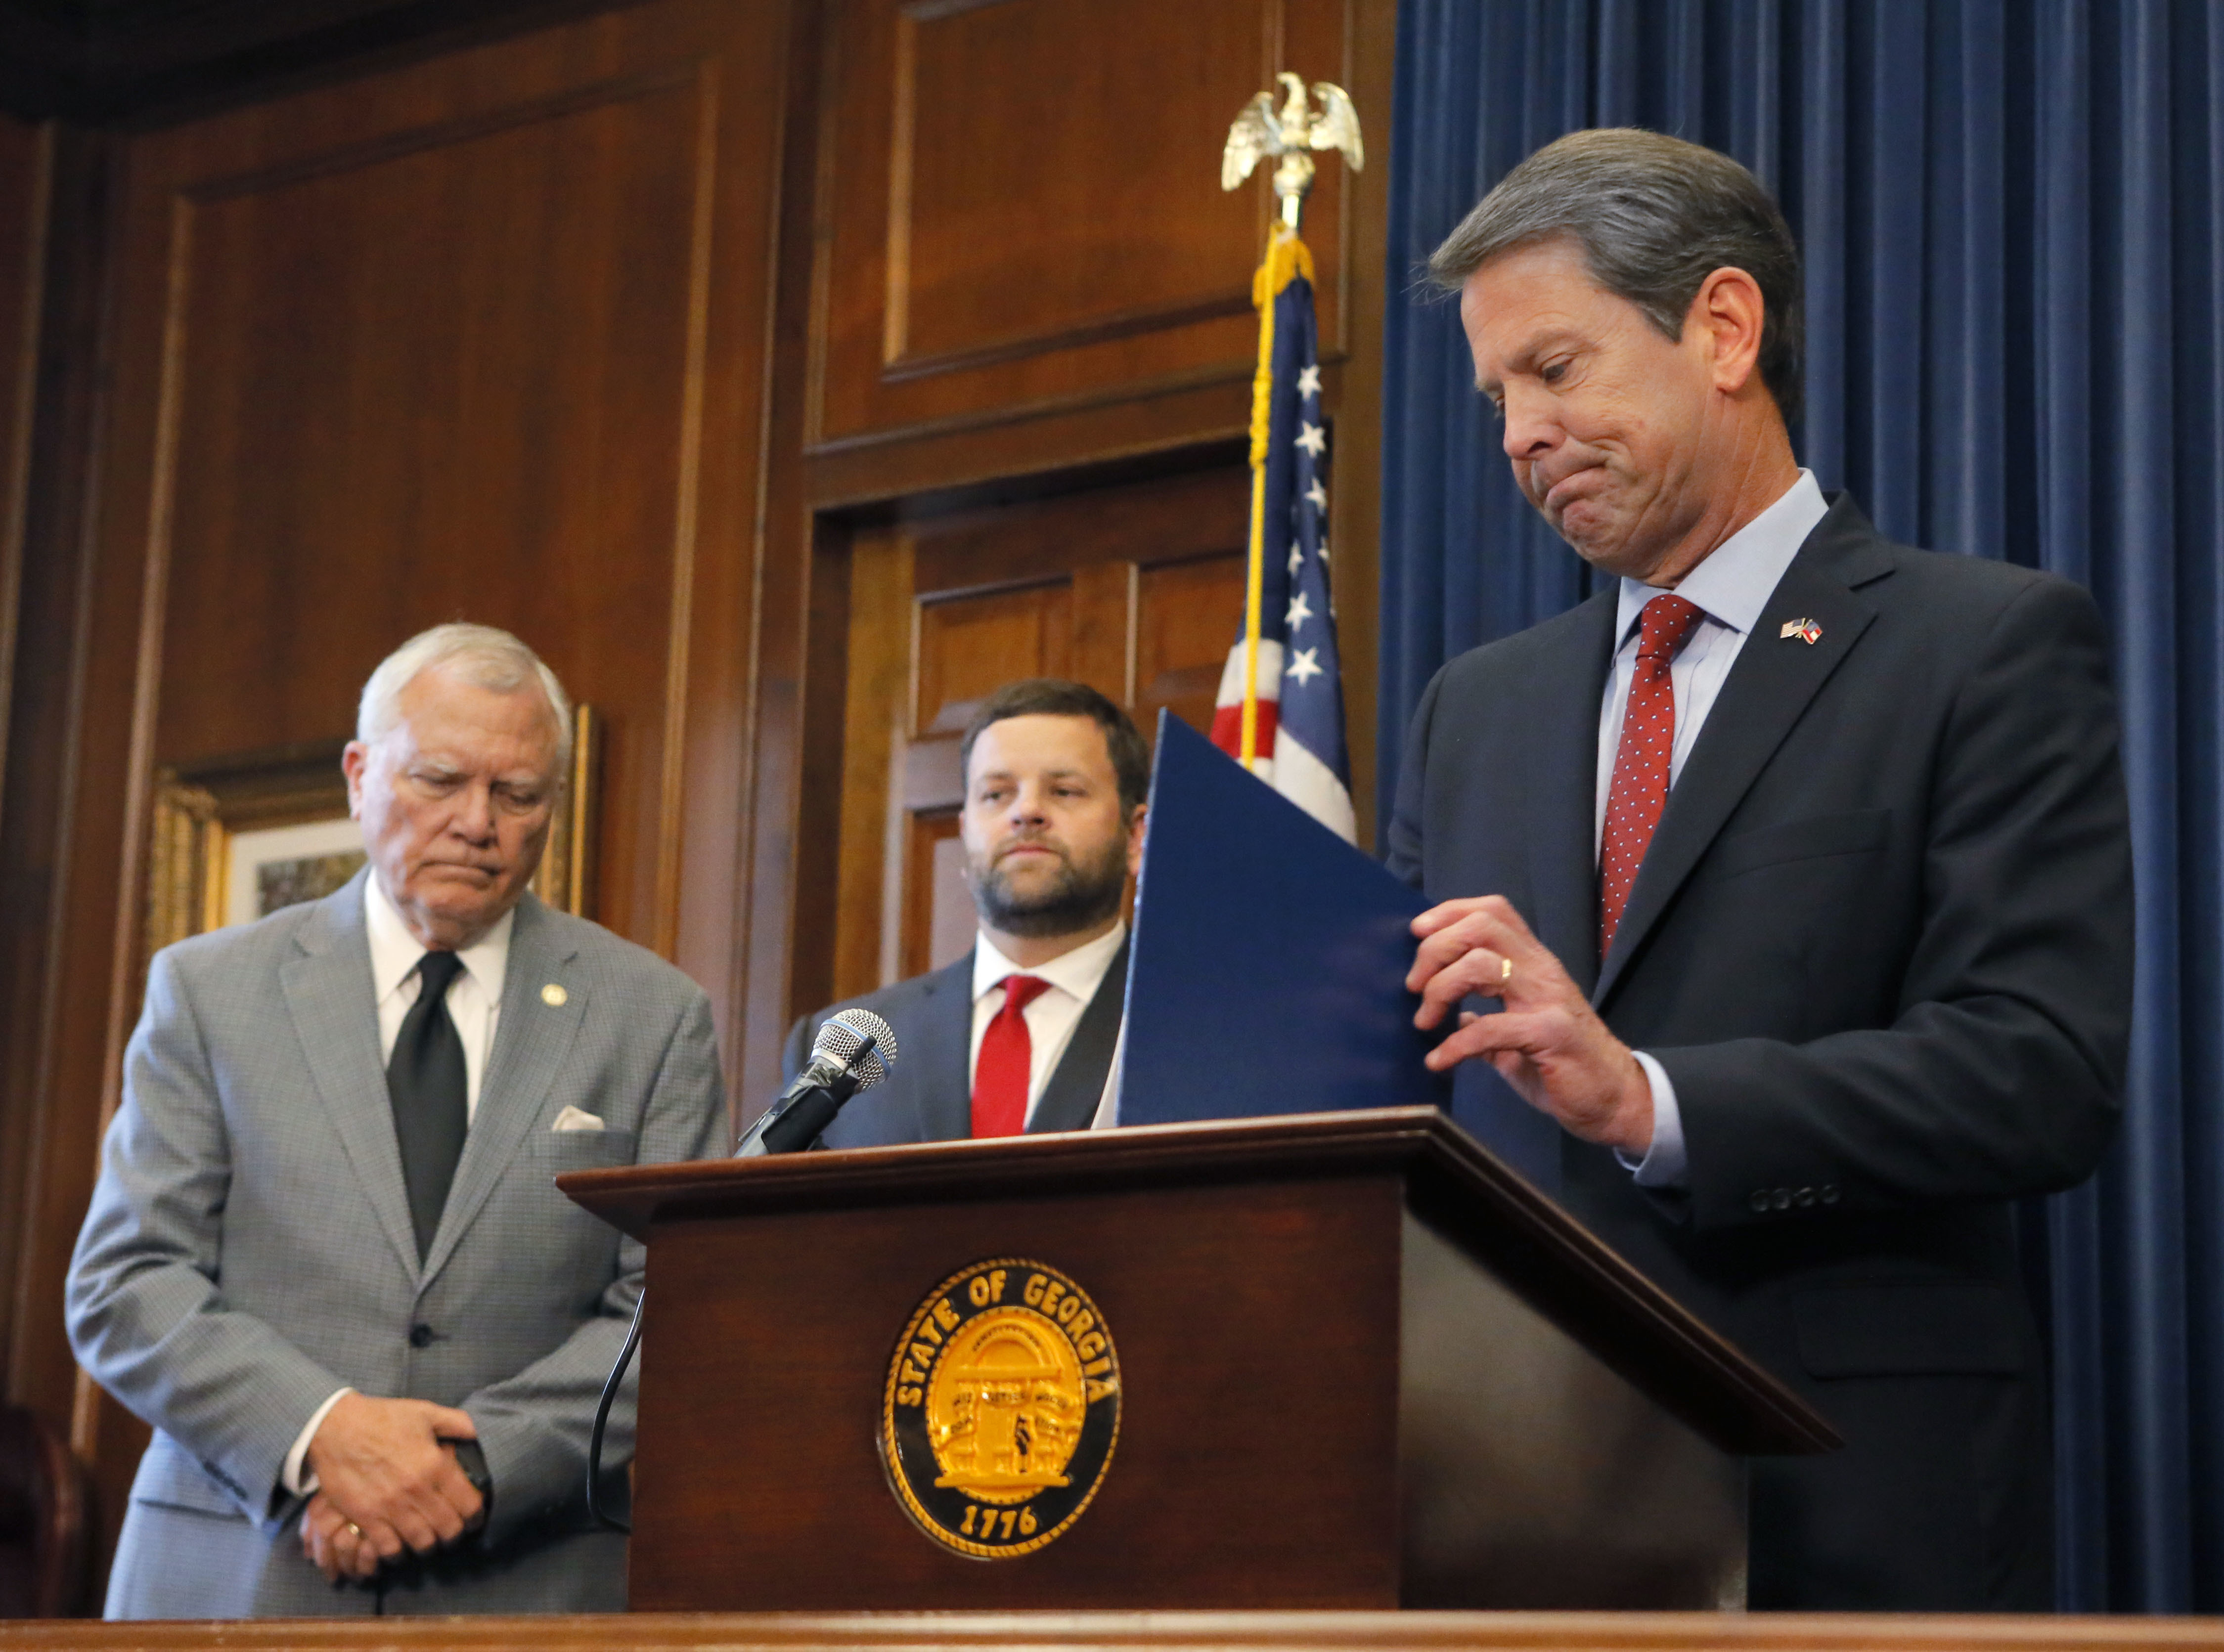 Republican Brian Kemp, right, holds a news conference with Georgia Gov. Nathan Deal, left, in the Governor's ceremonial office at the Capitol on Thursday, Nov. 8, 2018, in Atlanta, Ga. Kemp resigned Thursday as Georgia's secretary of state, a day after his campaign said he's captured enough votes to become governor despite his rival's refusal to concede. (Bob Andres/Atlanta Journal-Constitution via AP)